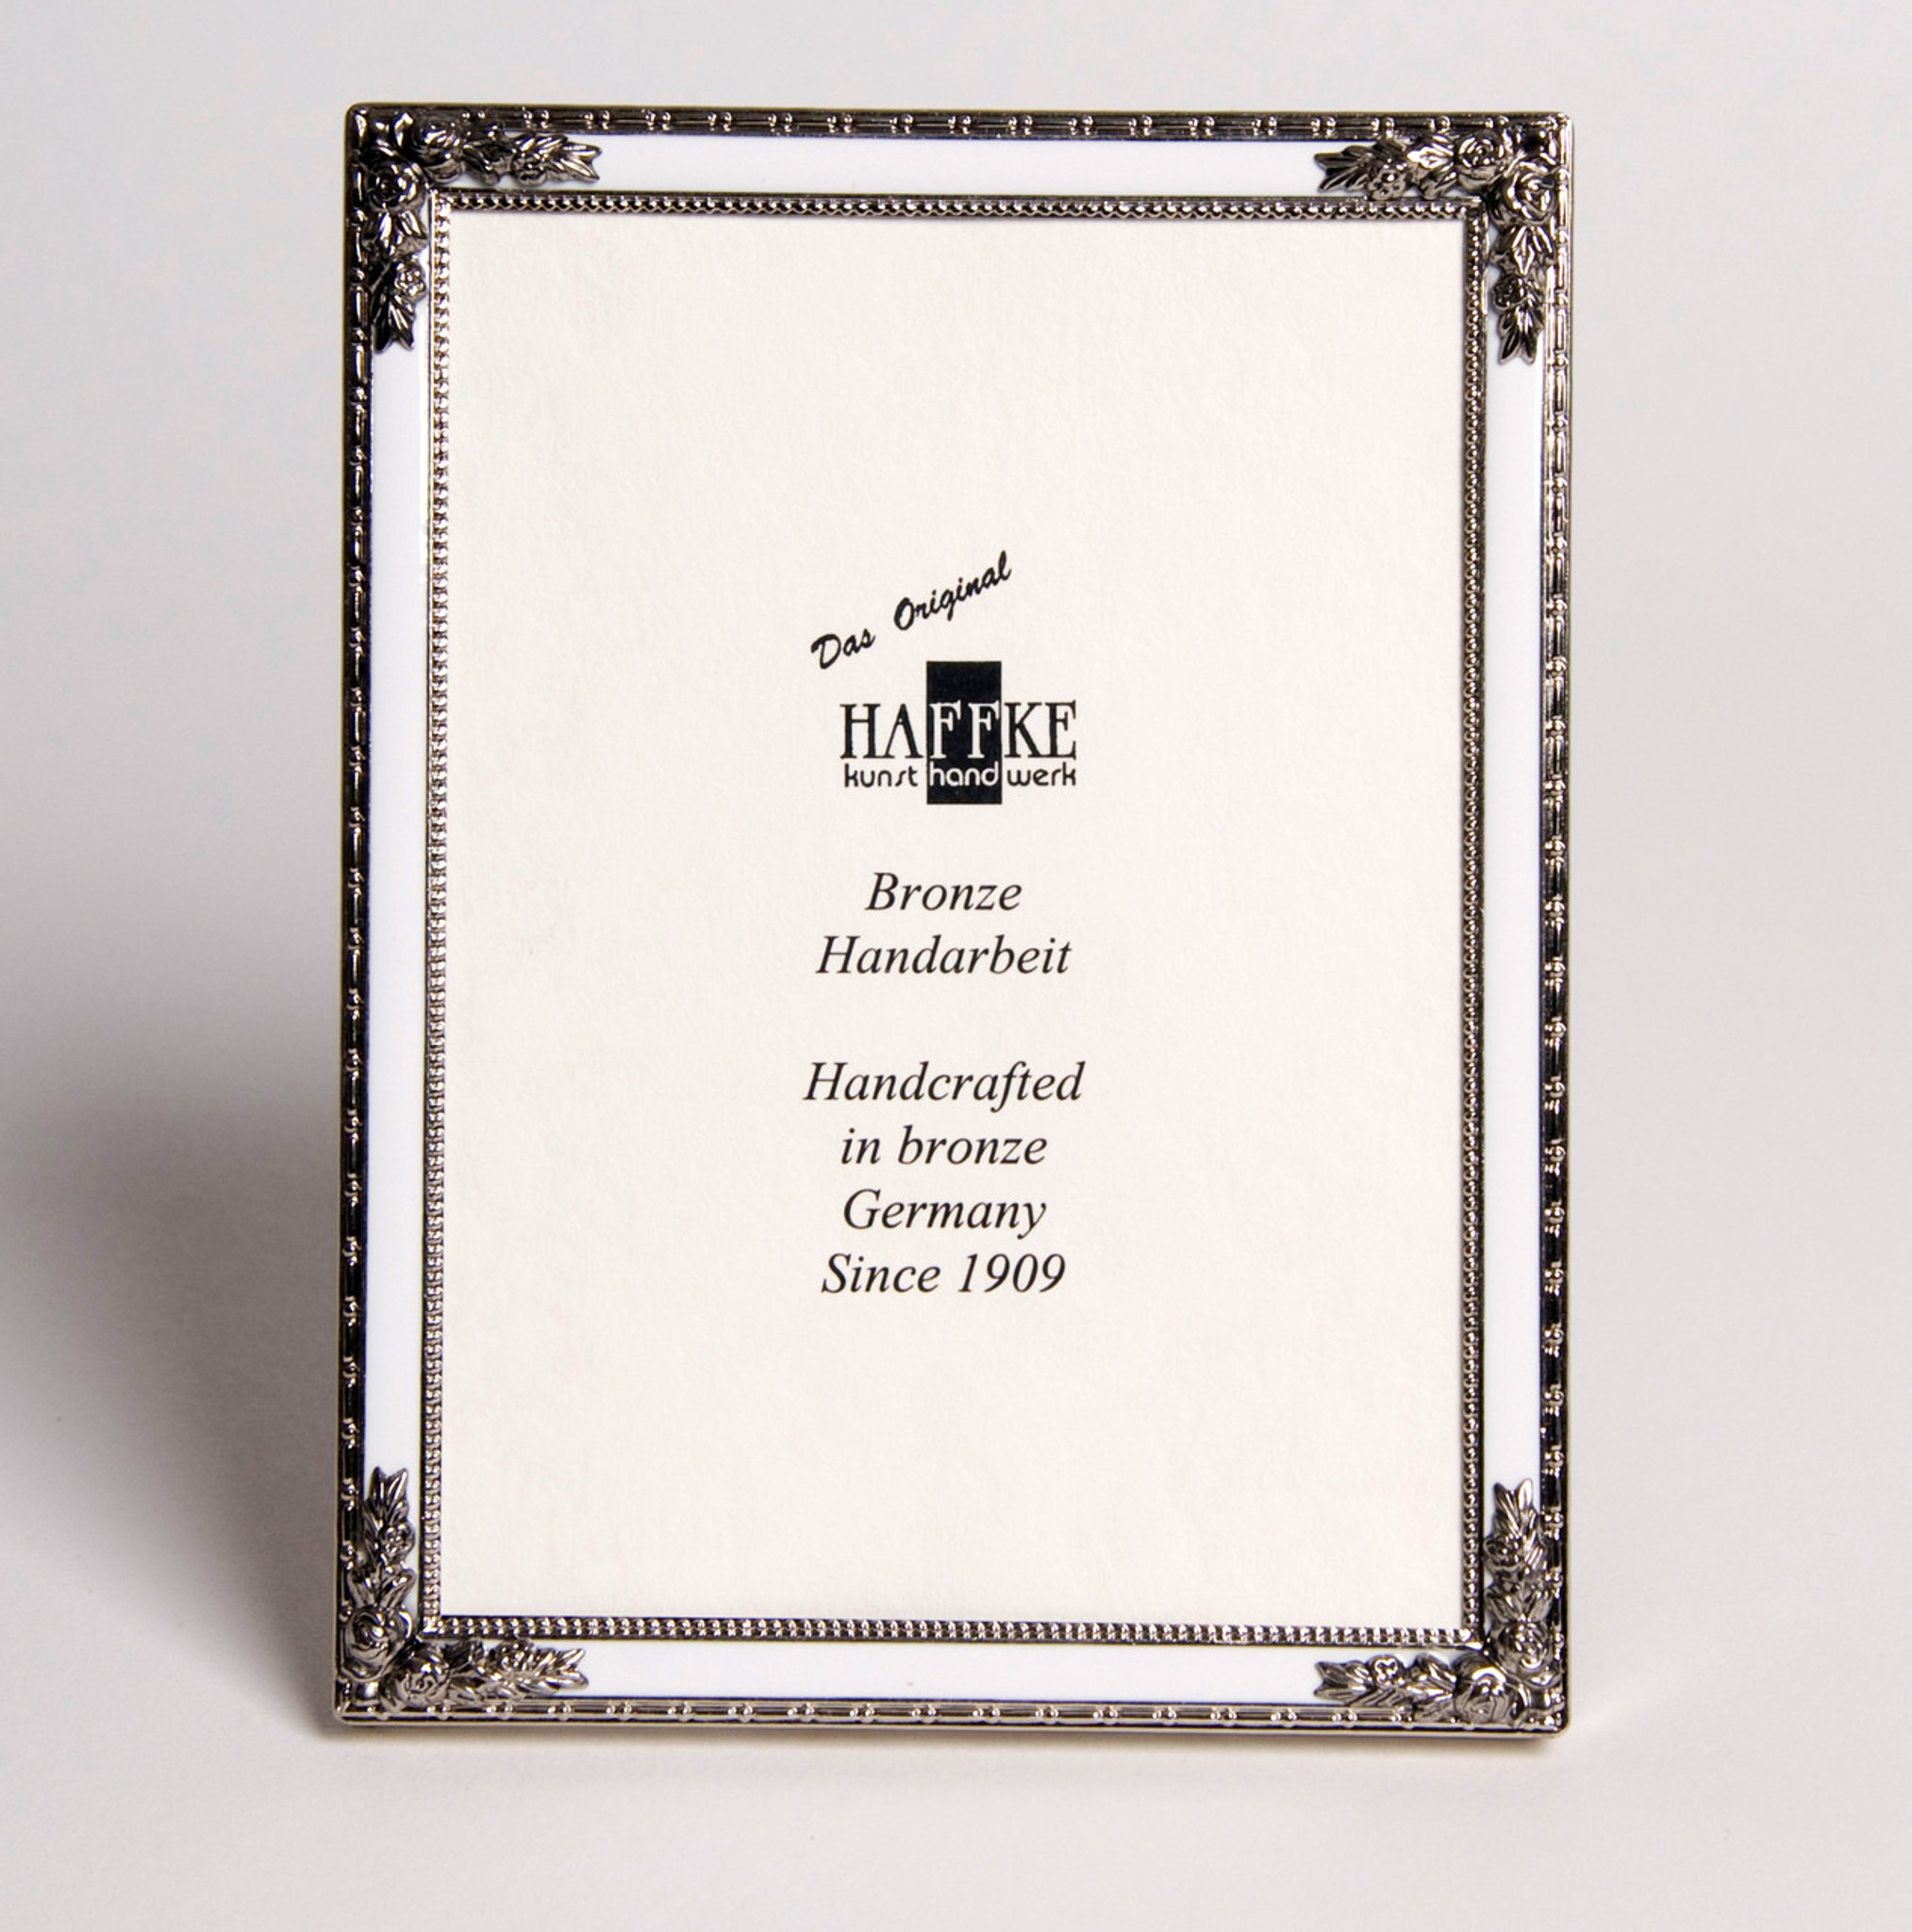 Haffke Silver Enamel Picture Frame with Rose 2.5 x 3.5 Inch - HomeBello